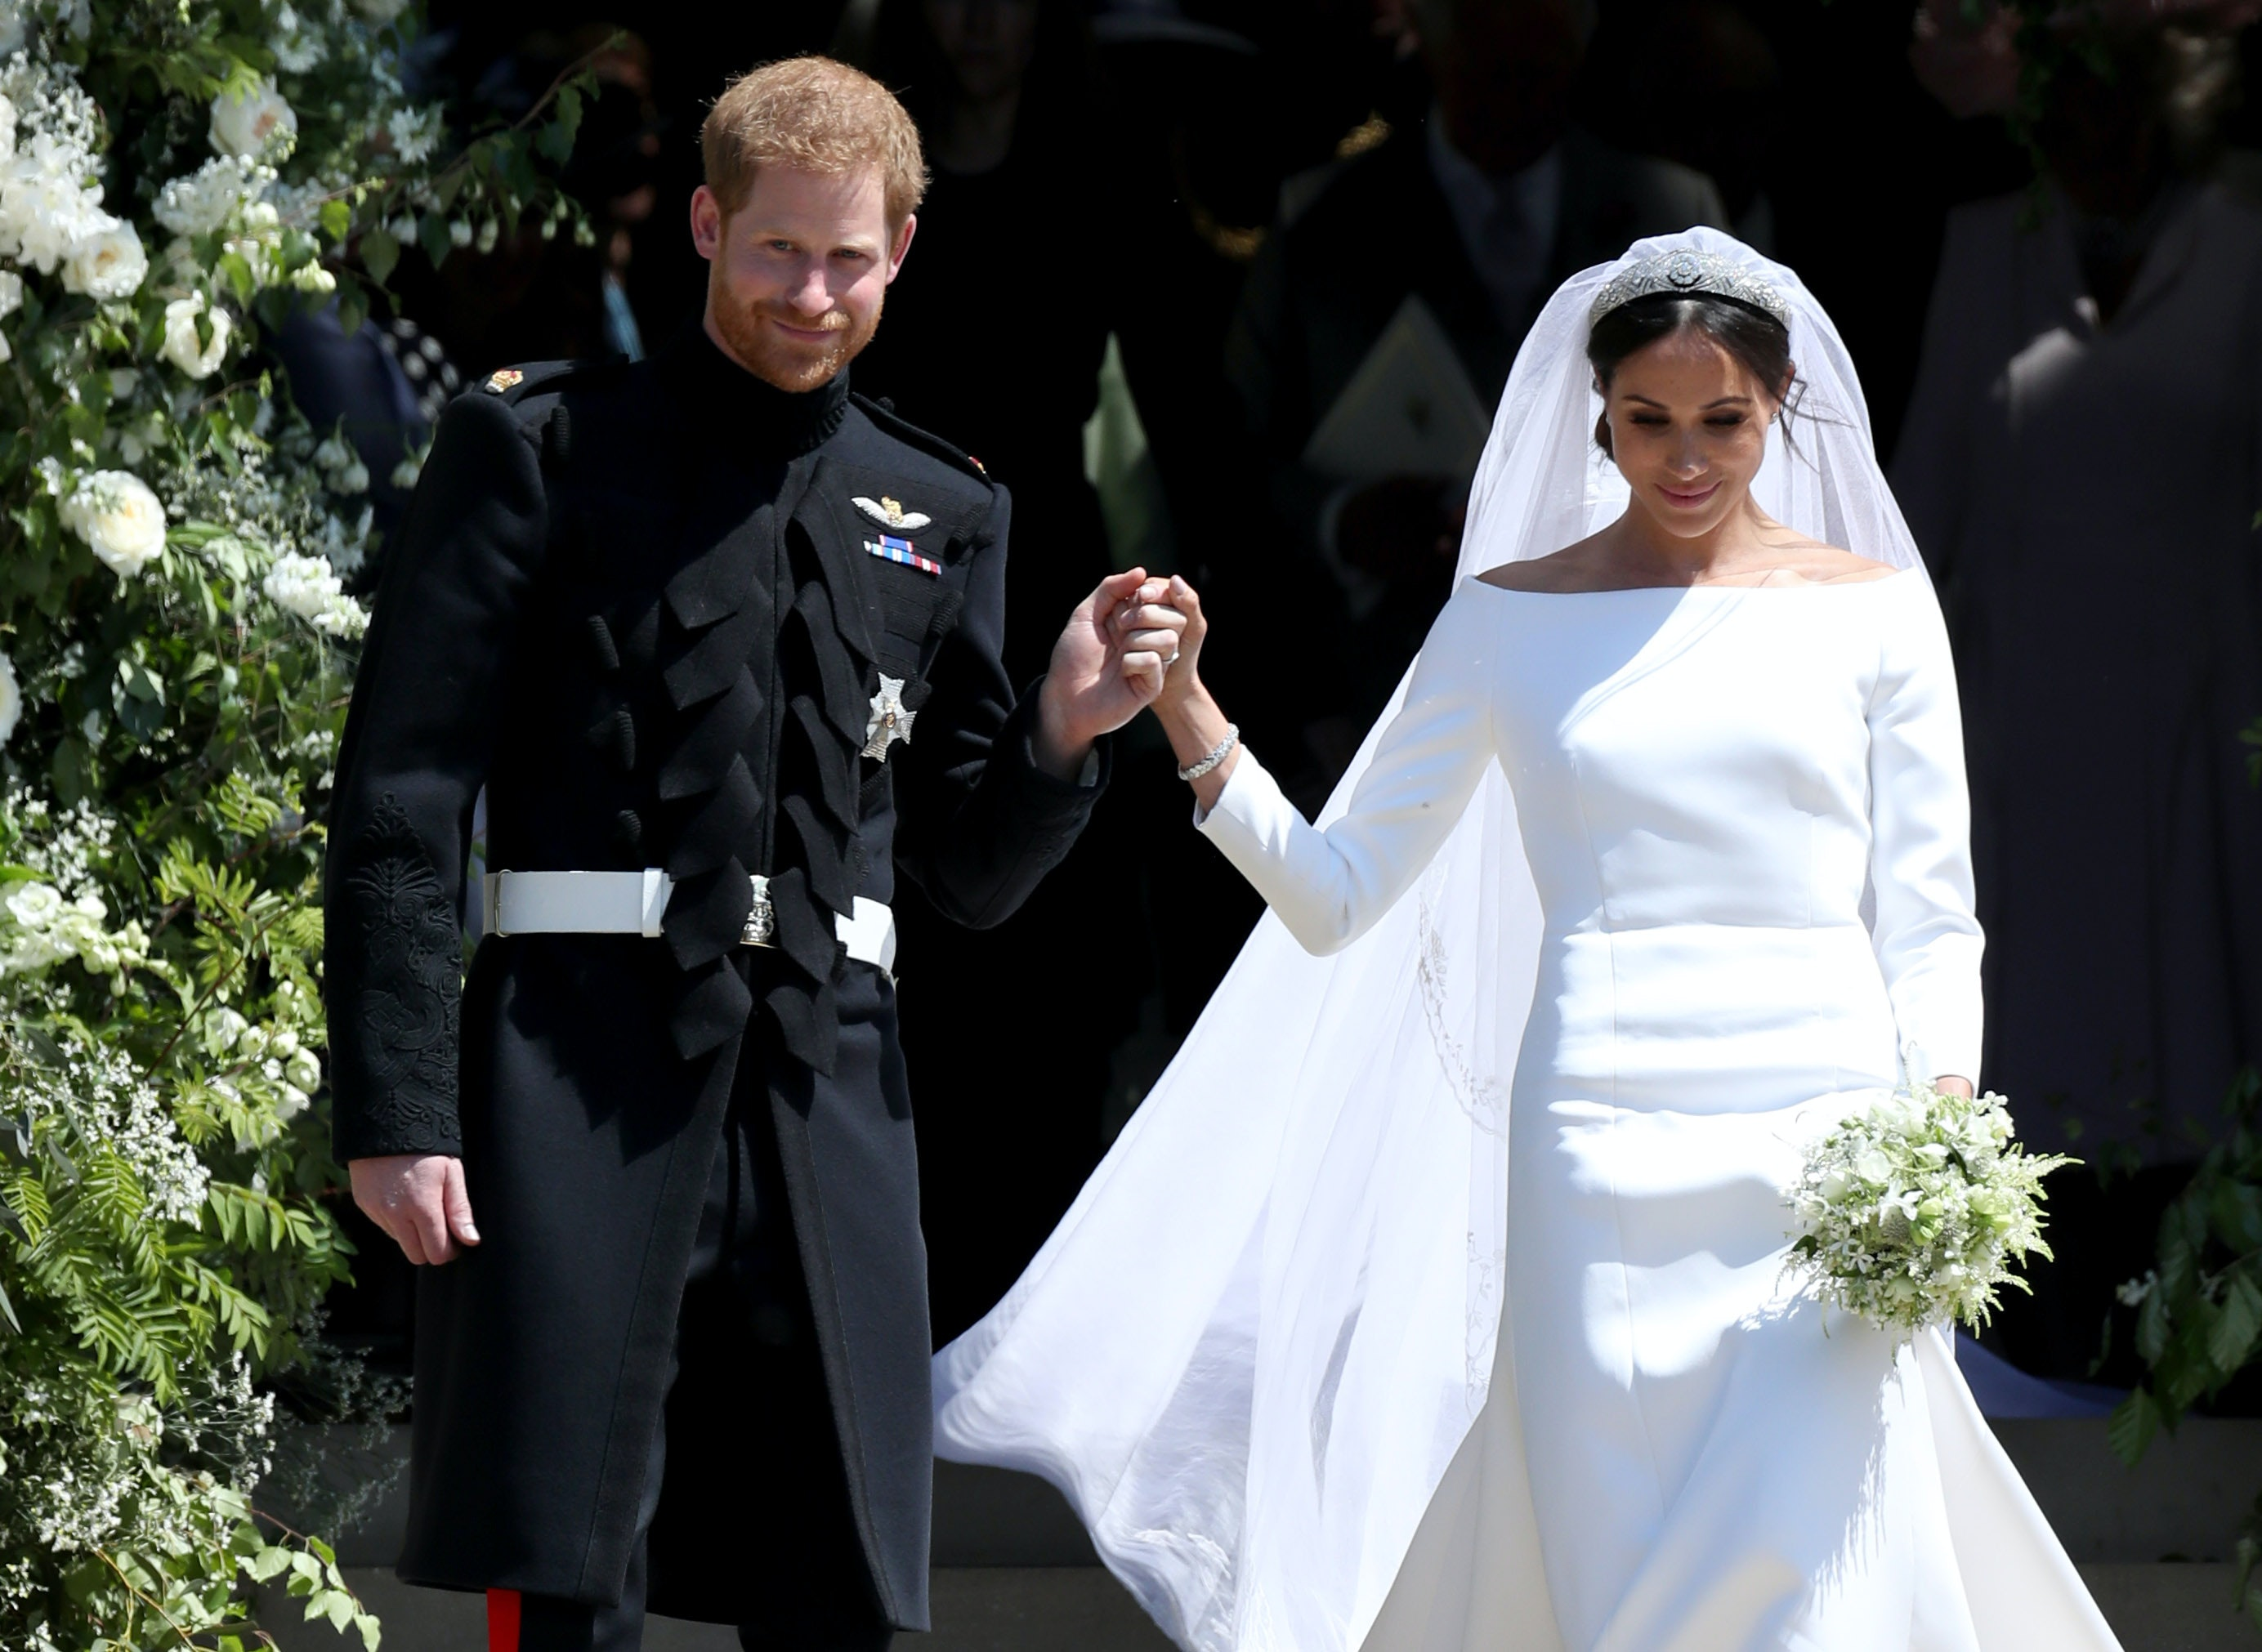 Official Royal Wedding Pictures.The Official Royal Wedding Photos Are Here They Are Unbelievably Cute